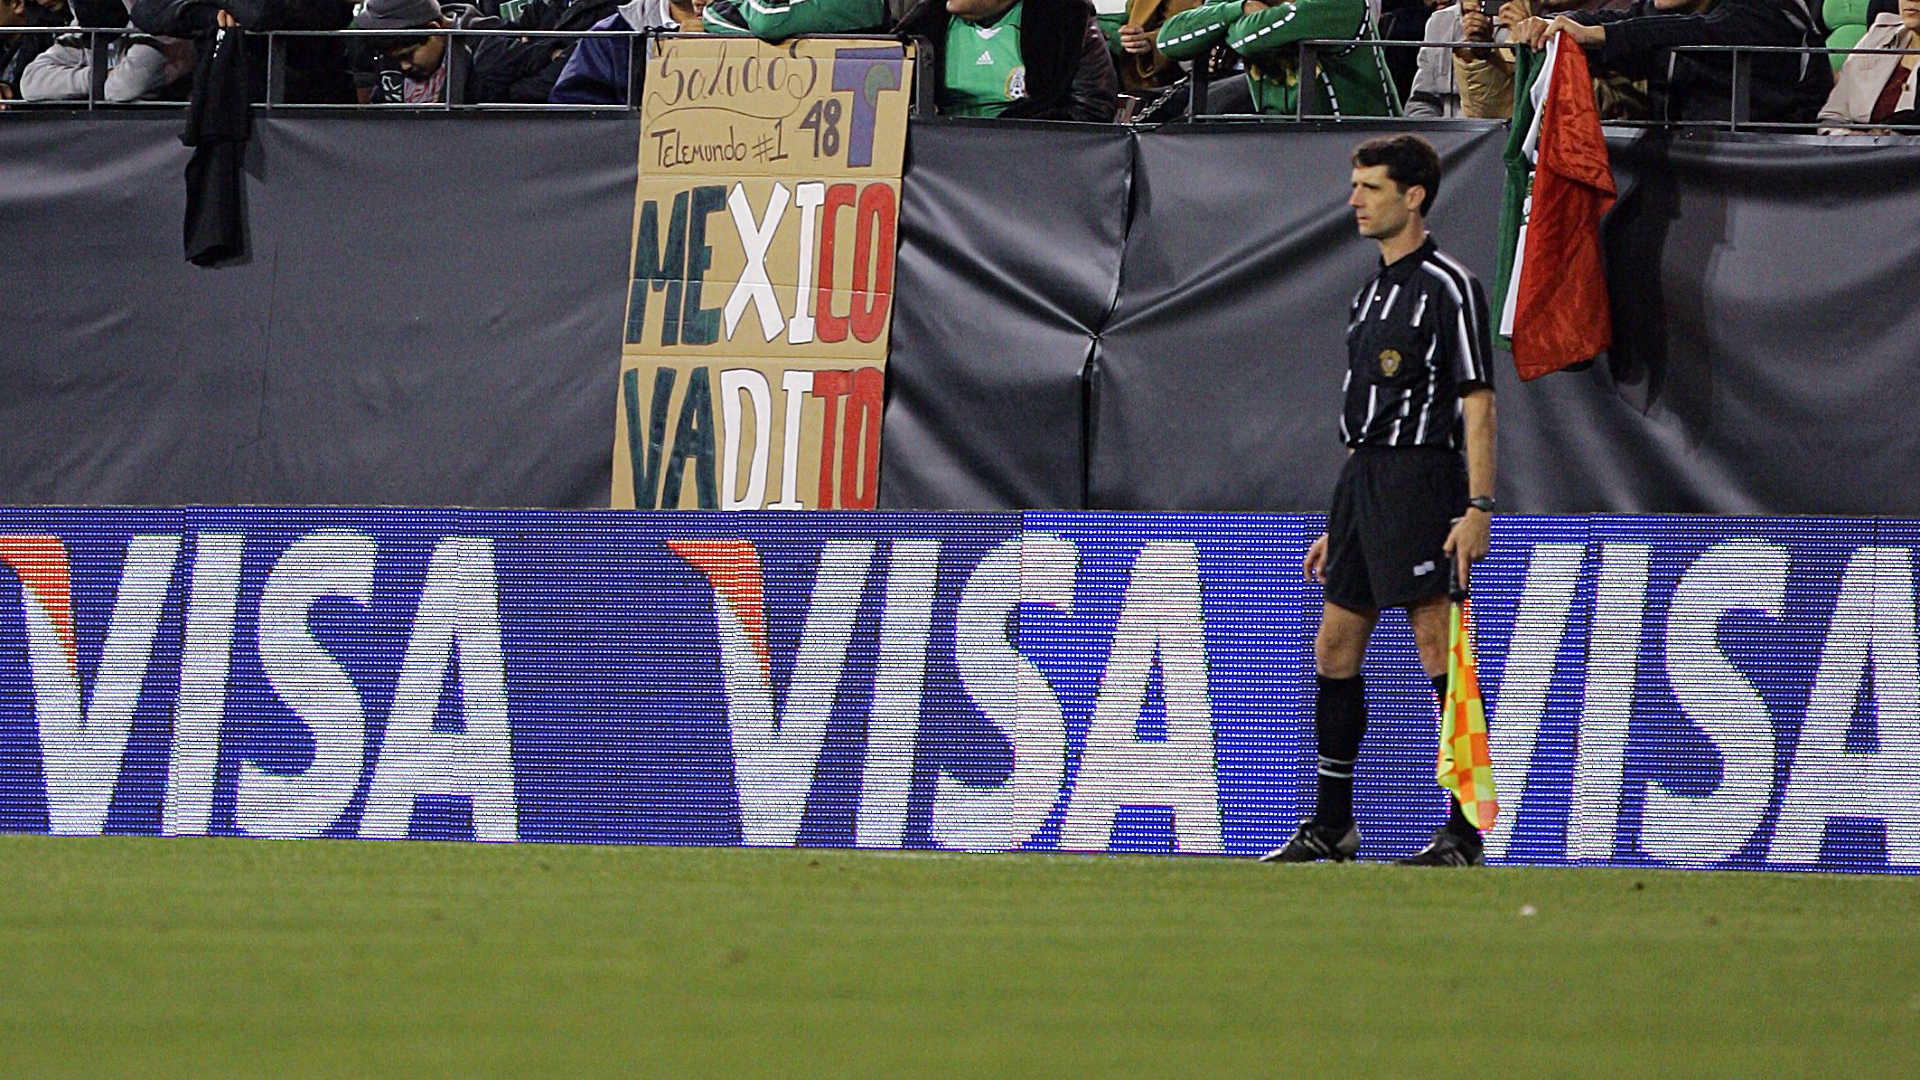 Visa may reevaluate sponsorship with FIFA following indictments